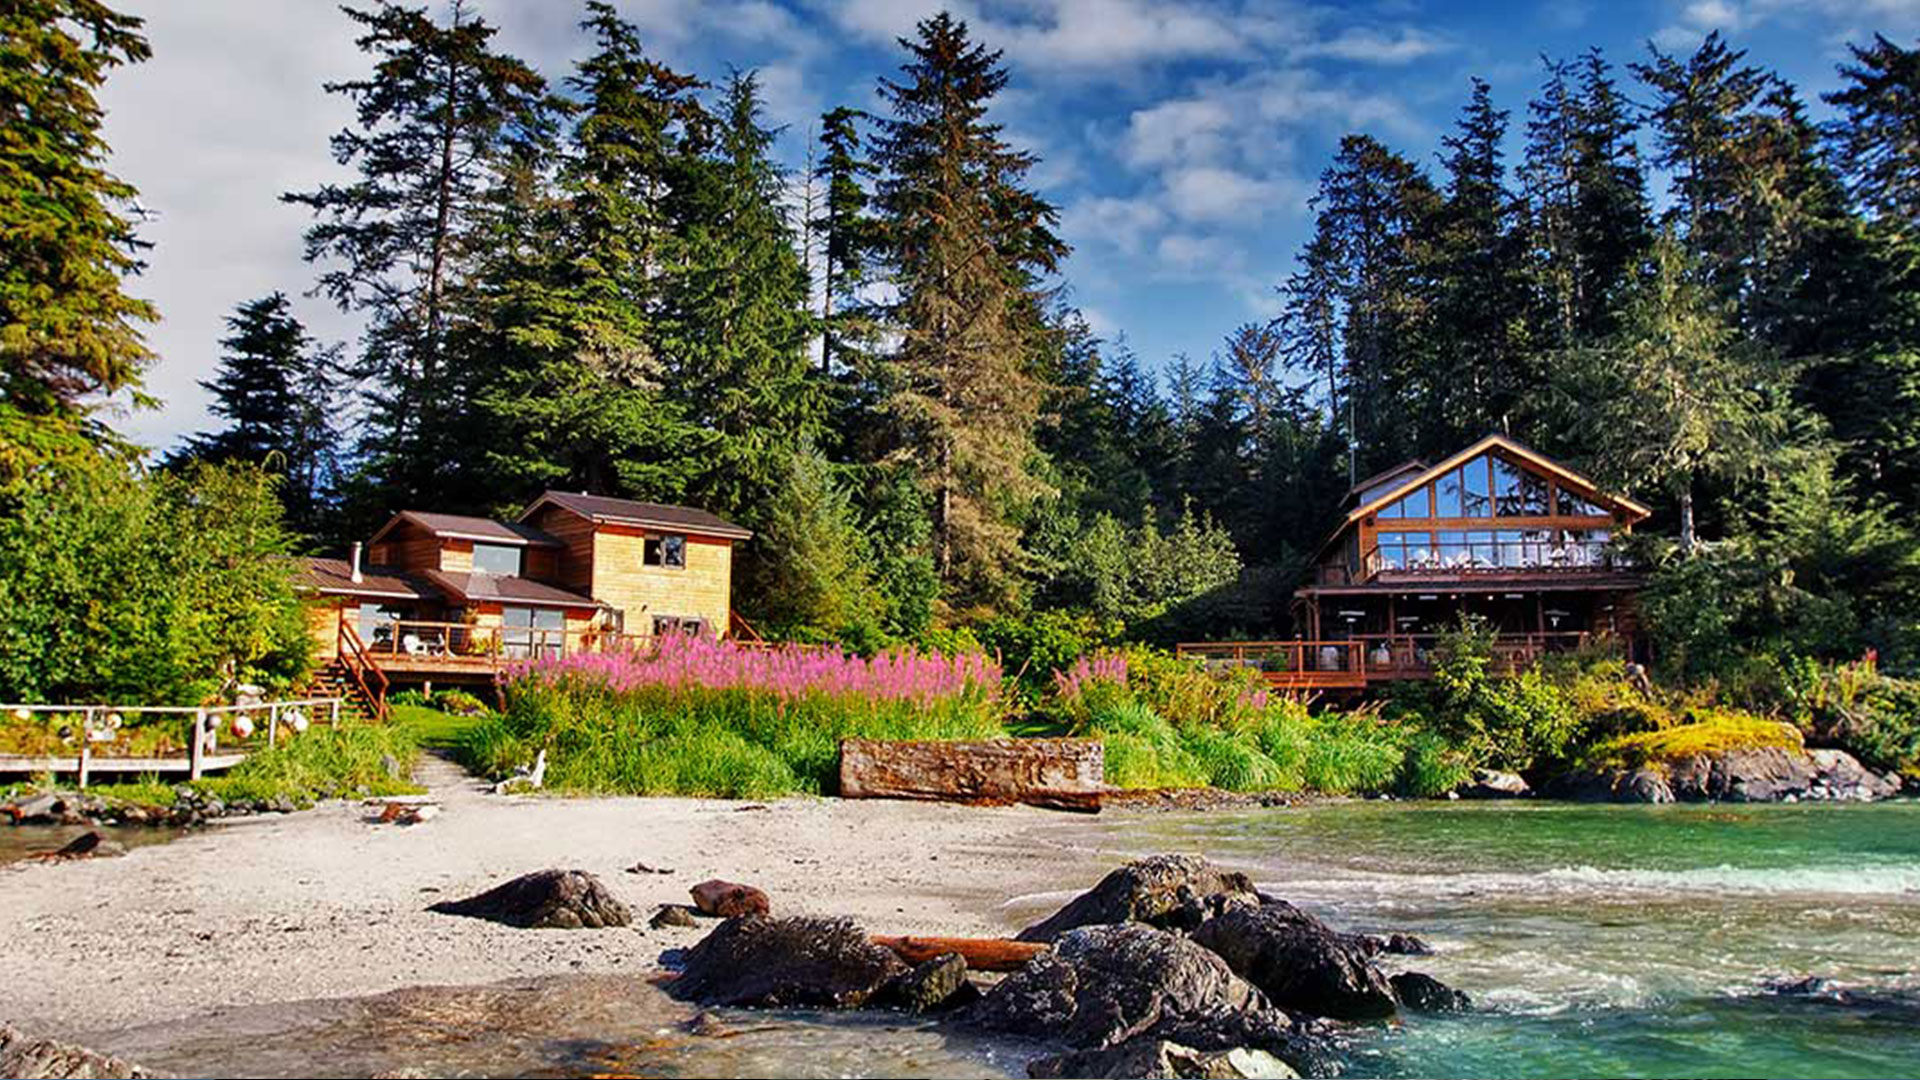 EXTRAORDINARY-ALASKA'S NUMBER 1 RATED FISHING RESORT